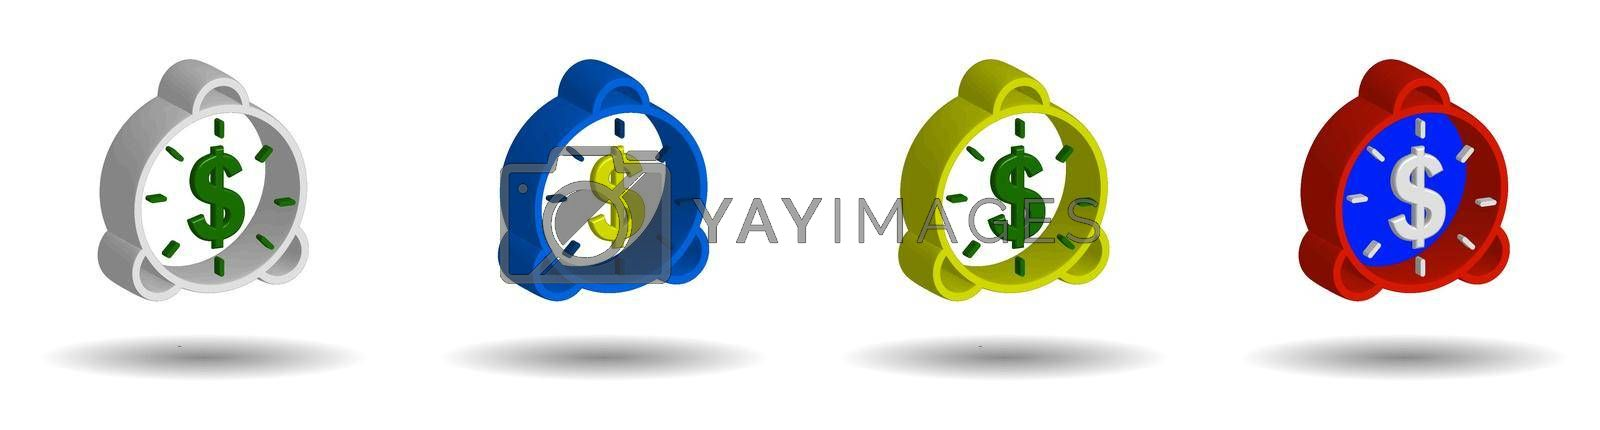 set of multi-colored alarm clocks in 3D style with us dollar sign on a transparent background